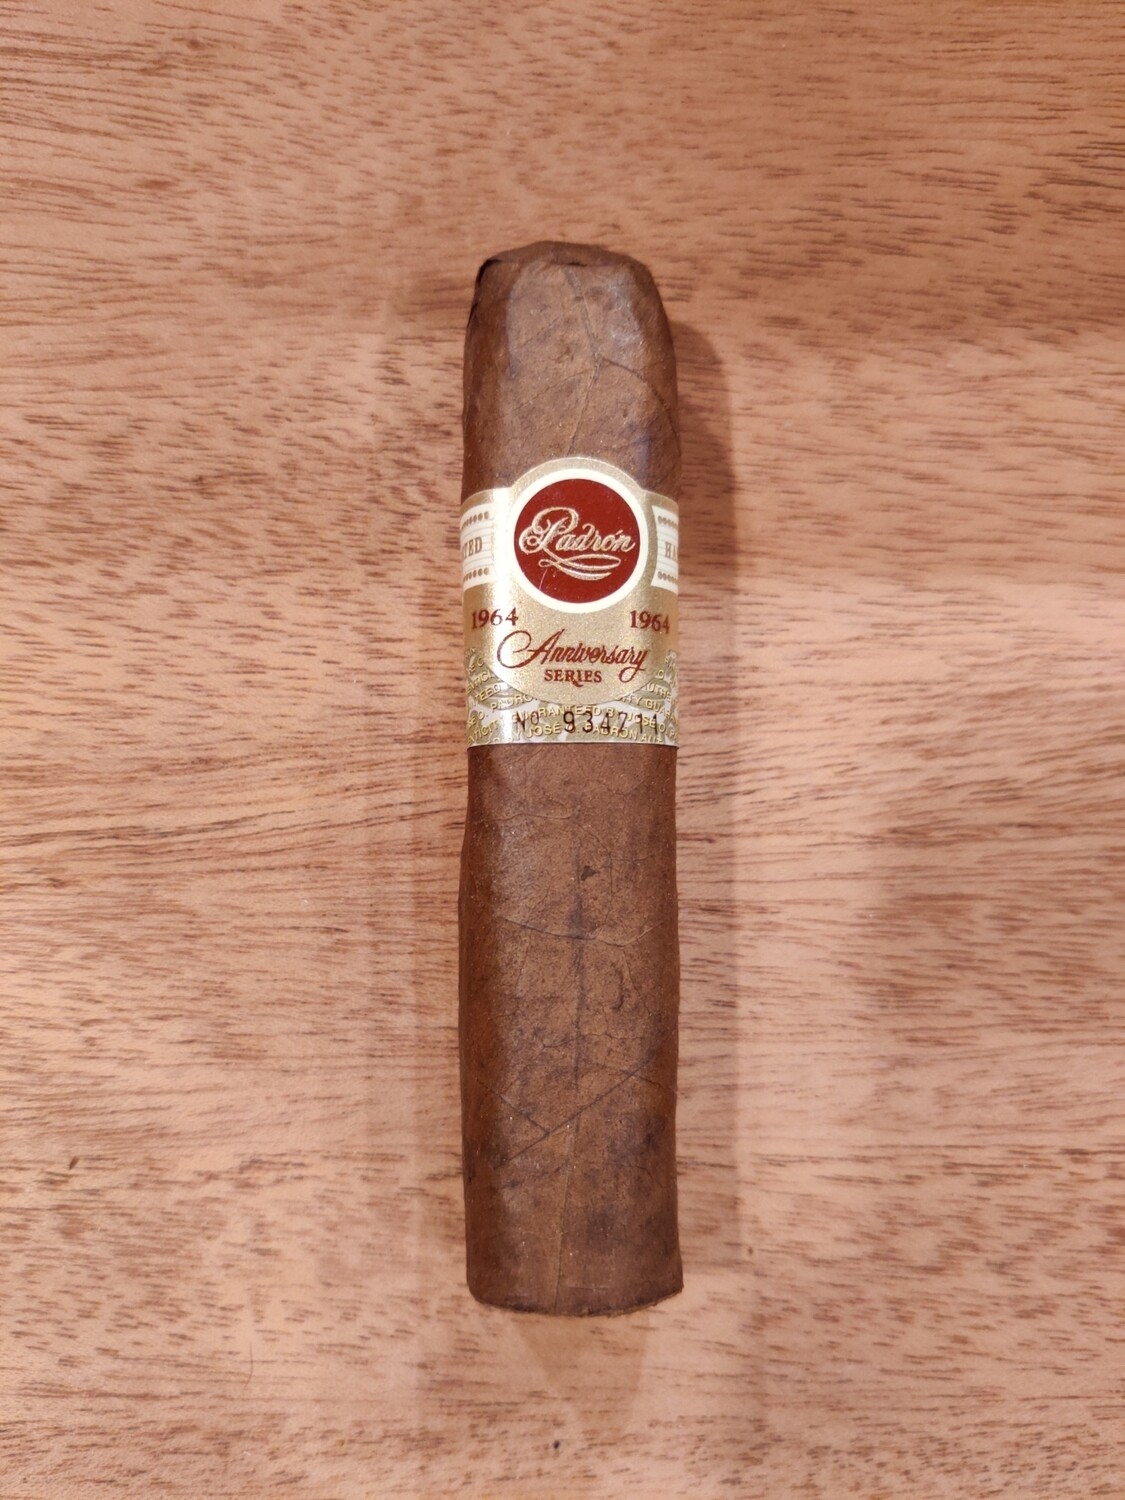 Padron 1964 Hermoso Natural Cigar